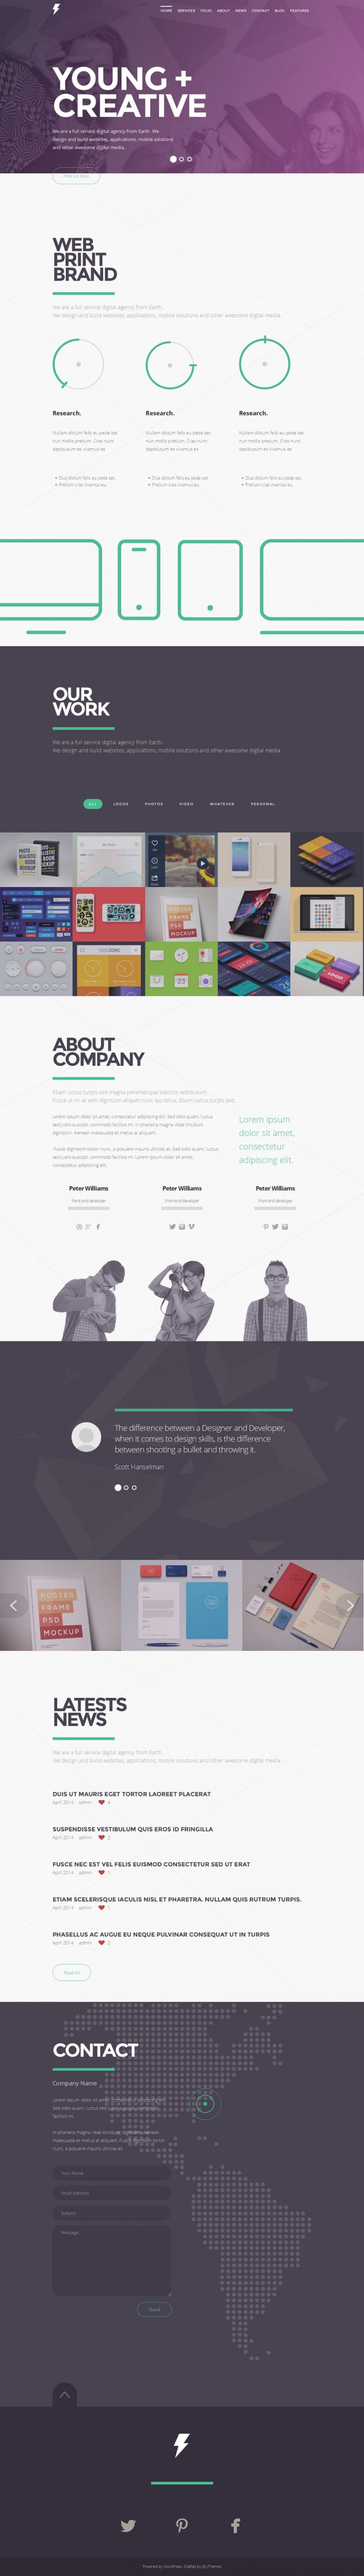 SENSA is simple and clean one page portfolio WordPress theme.